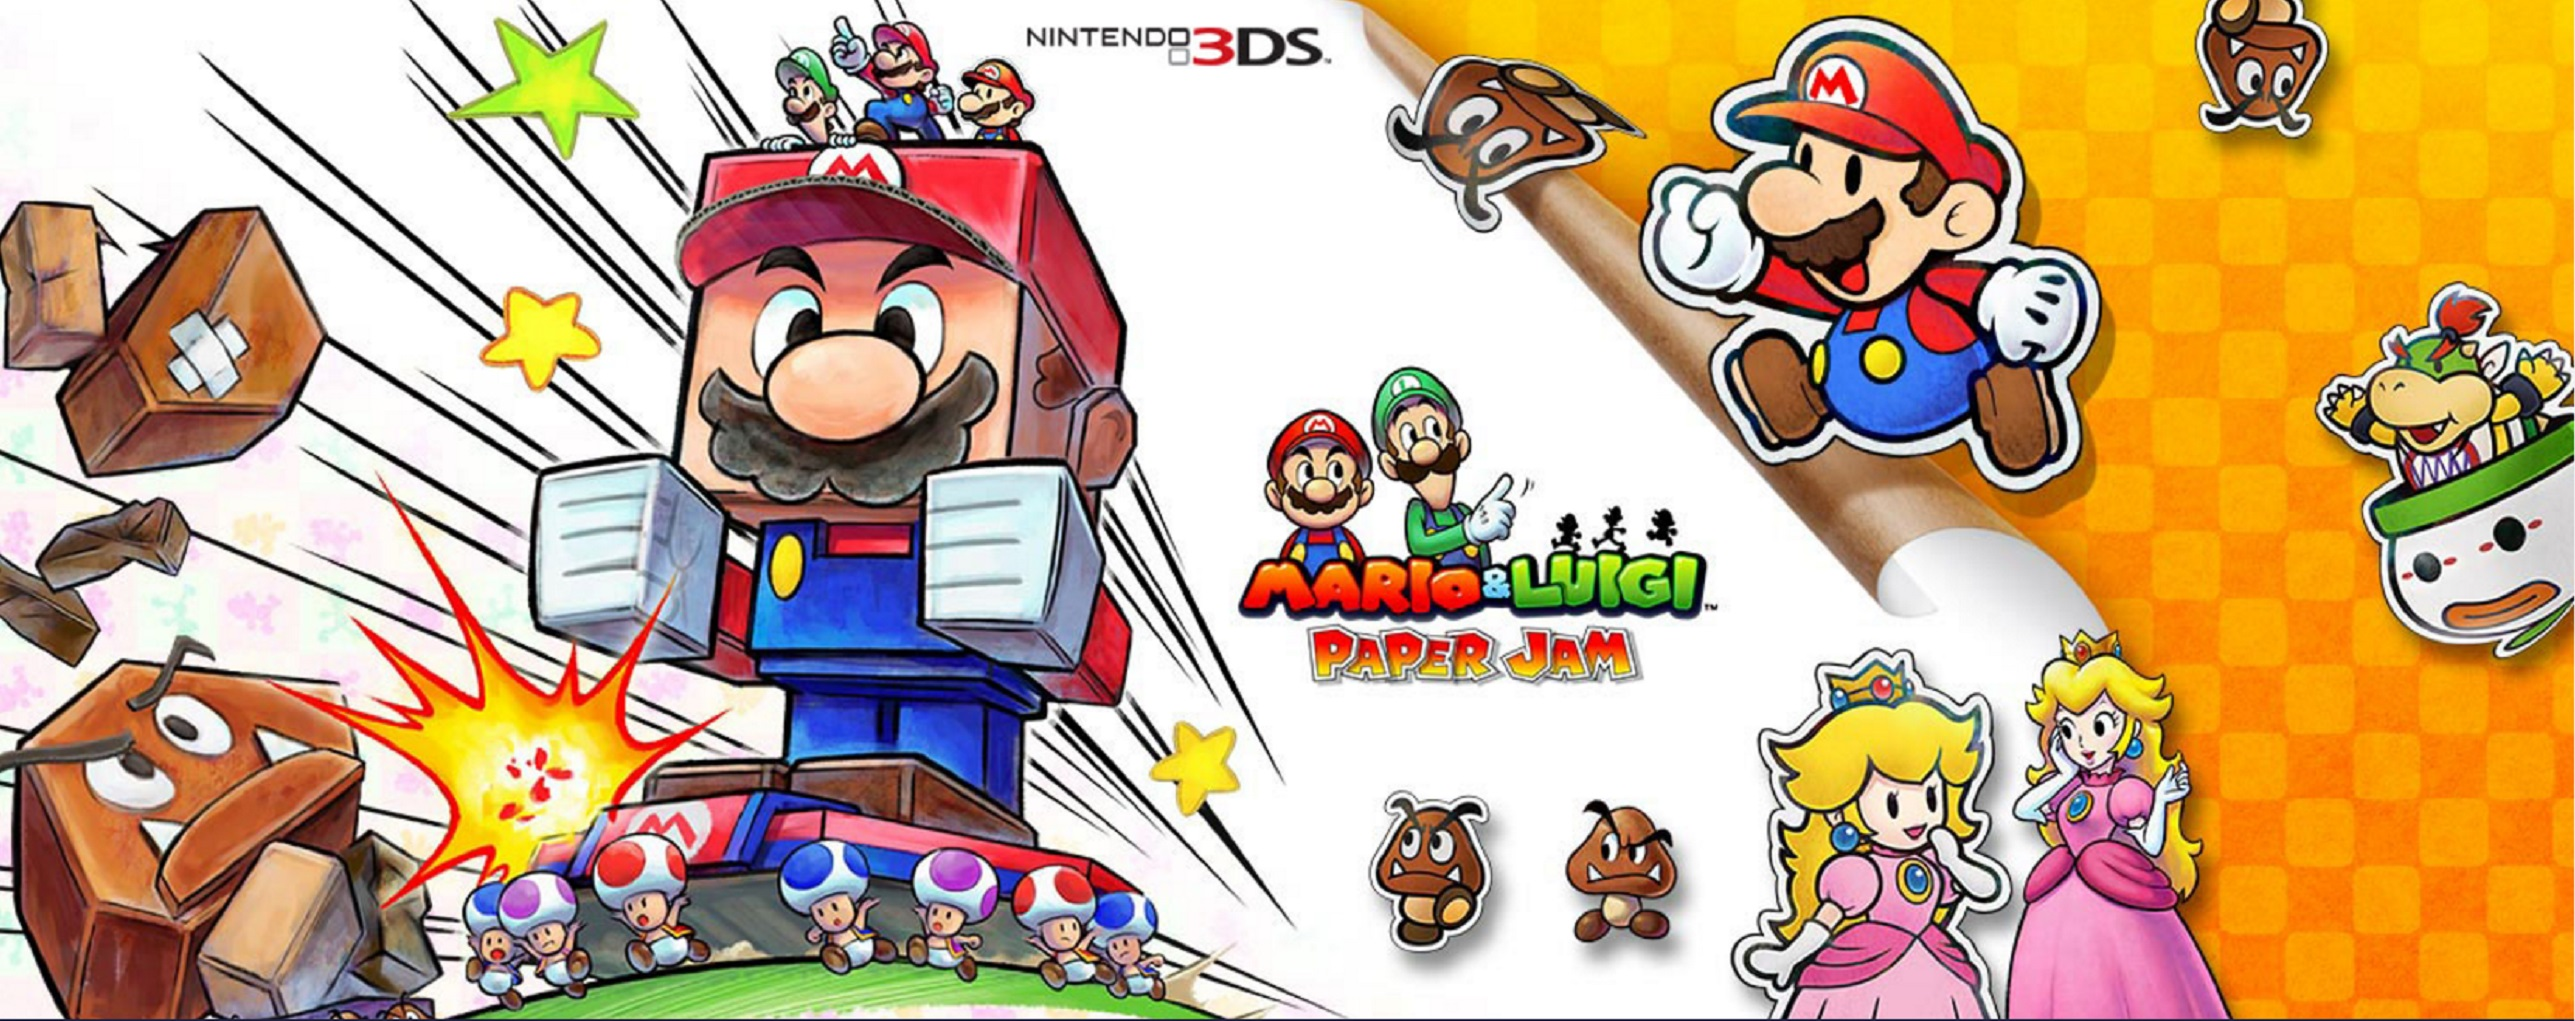 Mario And Luigi Paper Jam Wallpaper Cast Artwork Official Nintendo 3ds